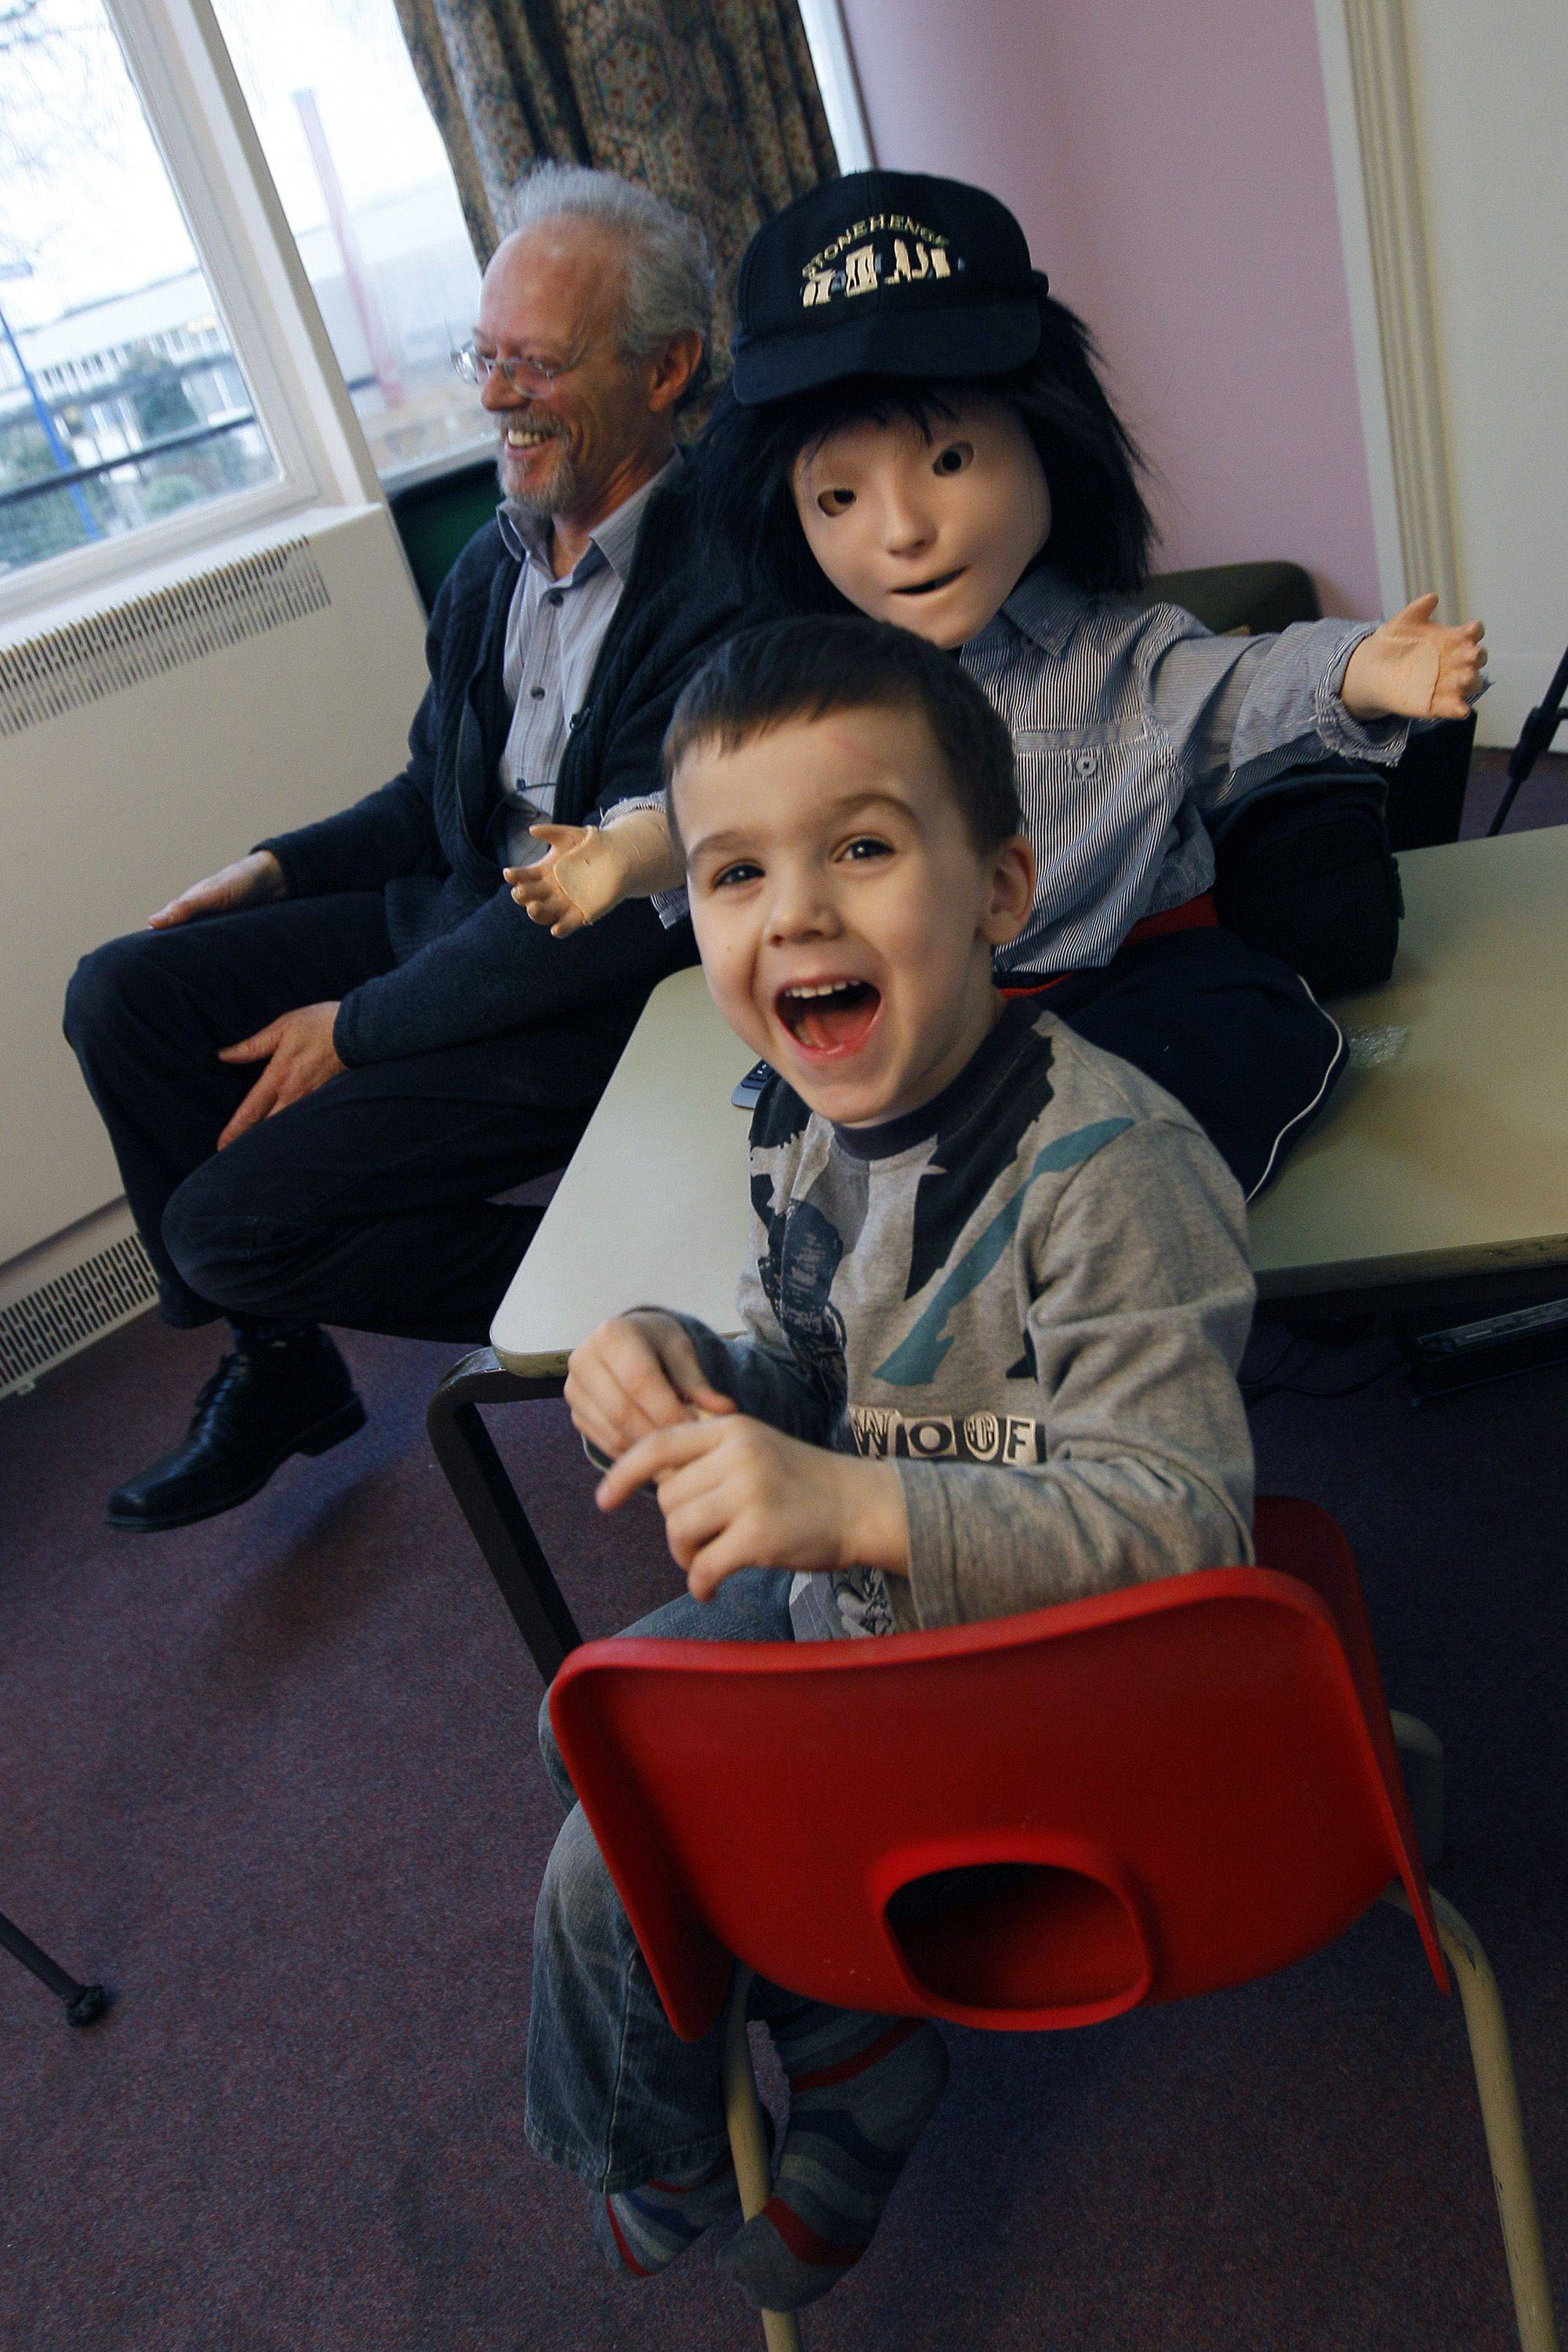 Ronnie Arloff smiles as he reacts to Kaspar the robot as he takes part in a research project with Dr. Ben Robins in Hatfield, England. Autistic children play with the robot for up to 10 minutes alongside a scientist who controls the robot with a remote control.